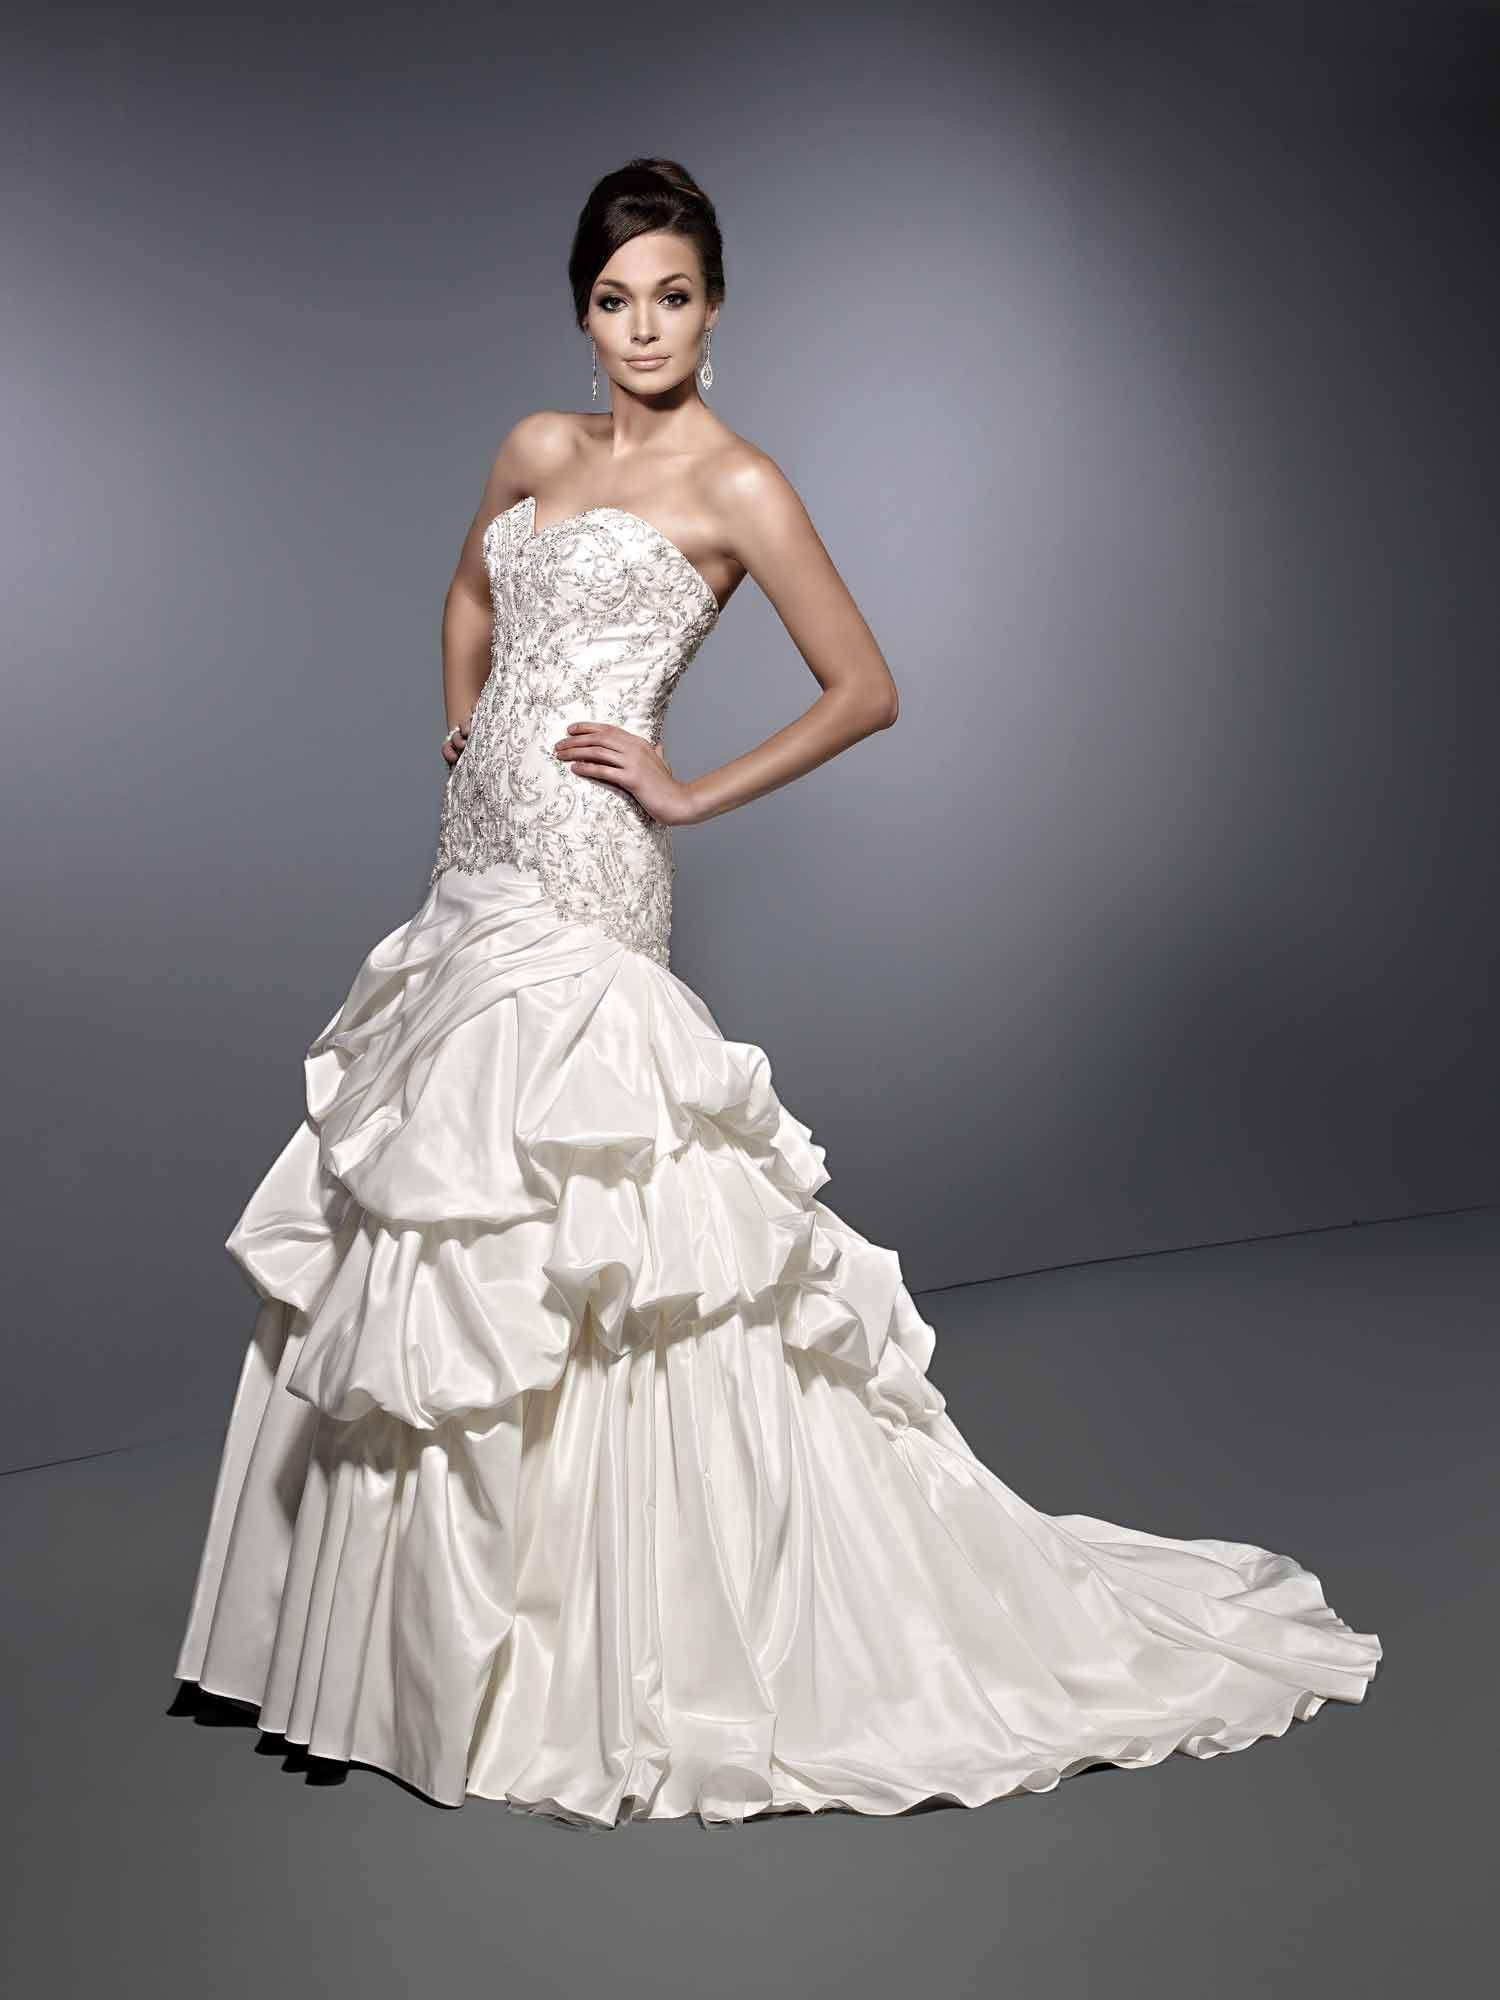 Elite wedding dresses  Kenneth Winston   Products  Pinterest  Products